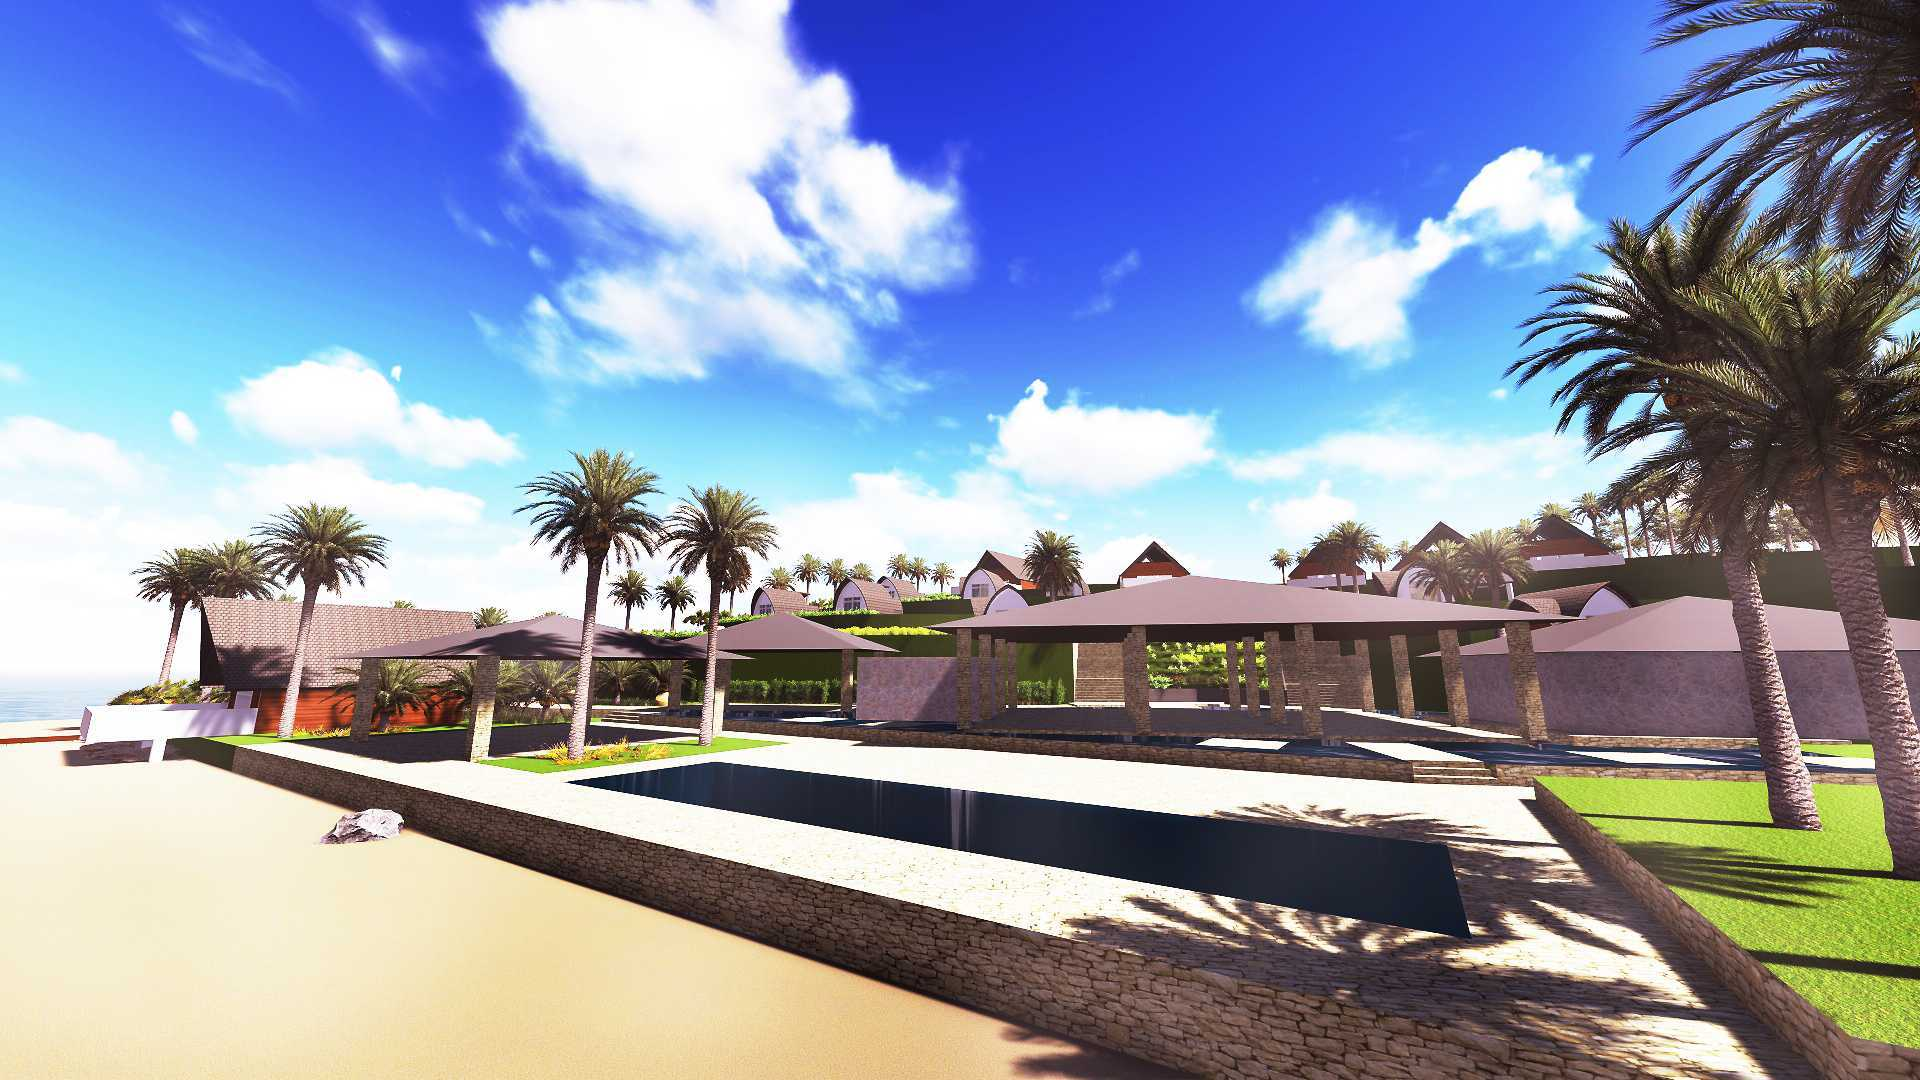 Equator.architect Resort And Diving Centre Tanjung Bulutan, Lombok Tanjung Bulutan, Lombok Outdoor Area   15947